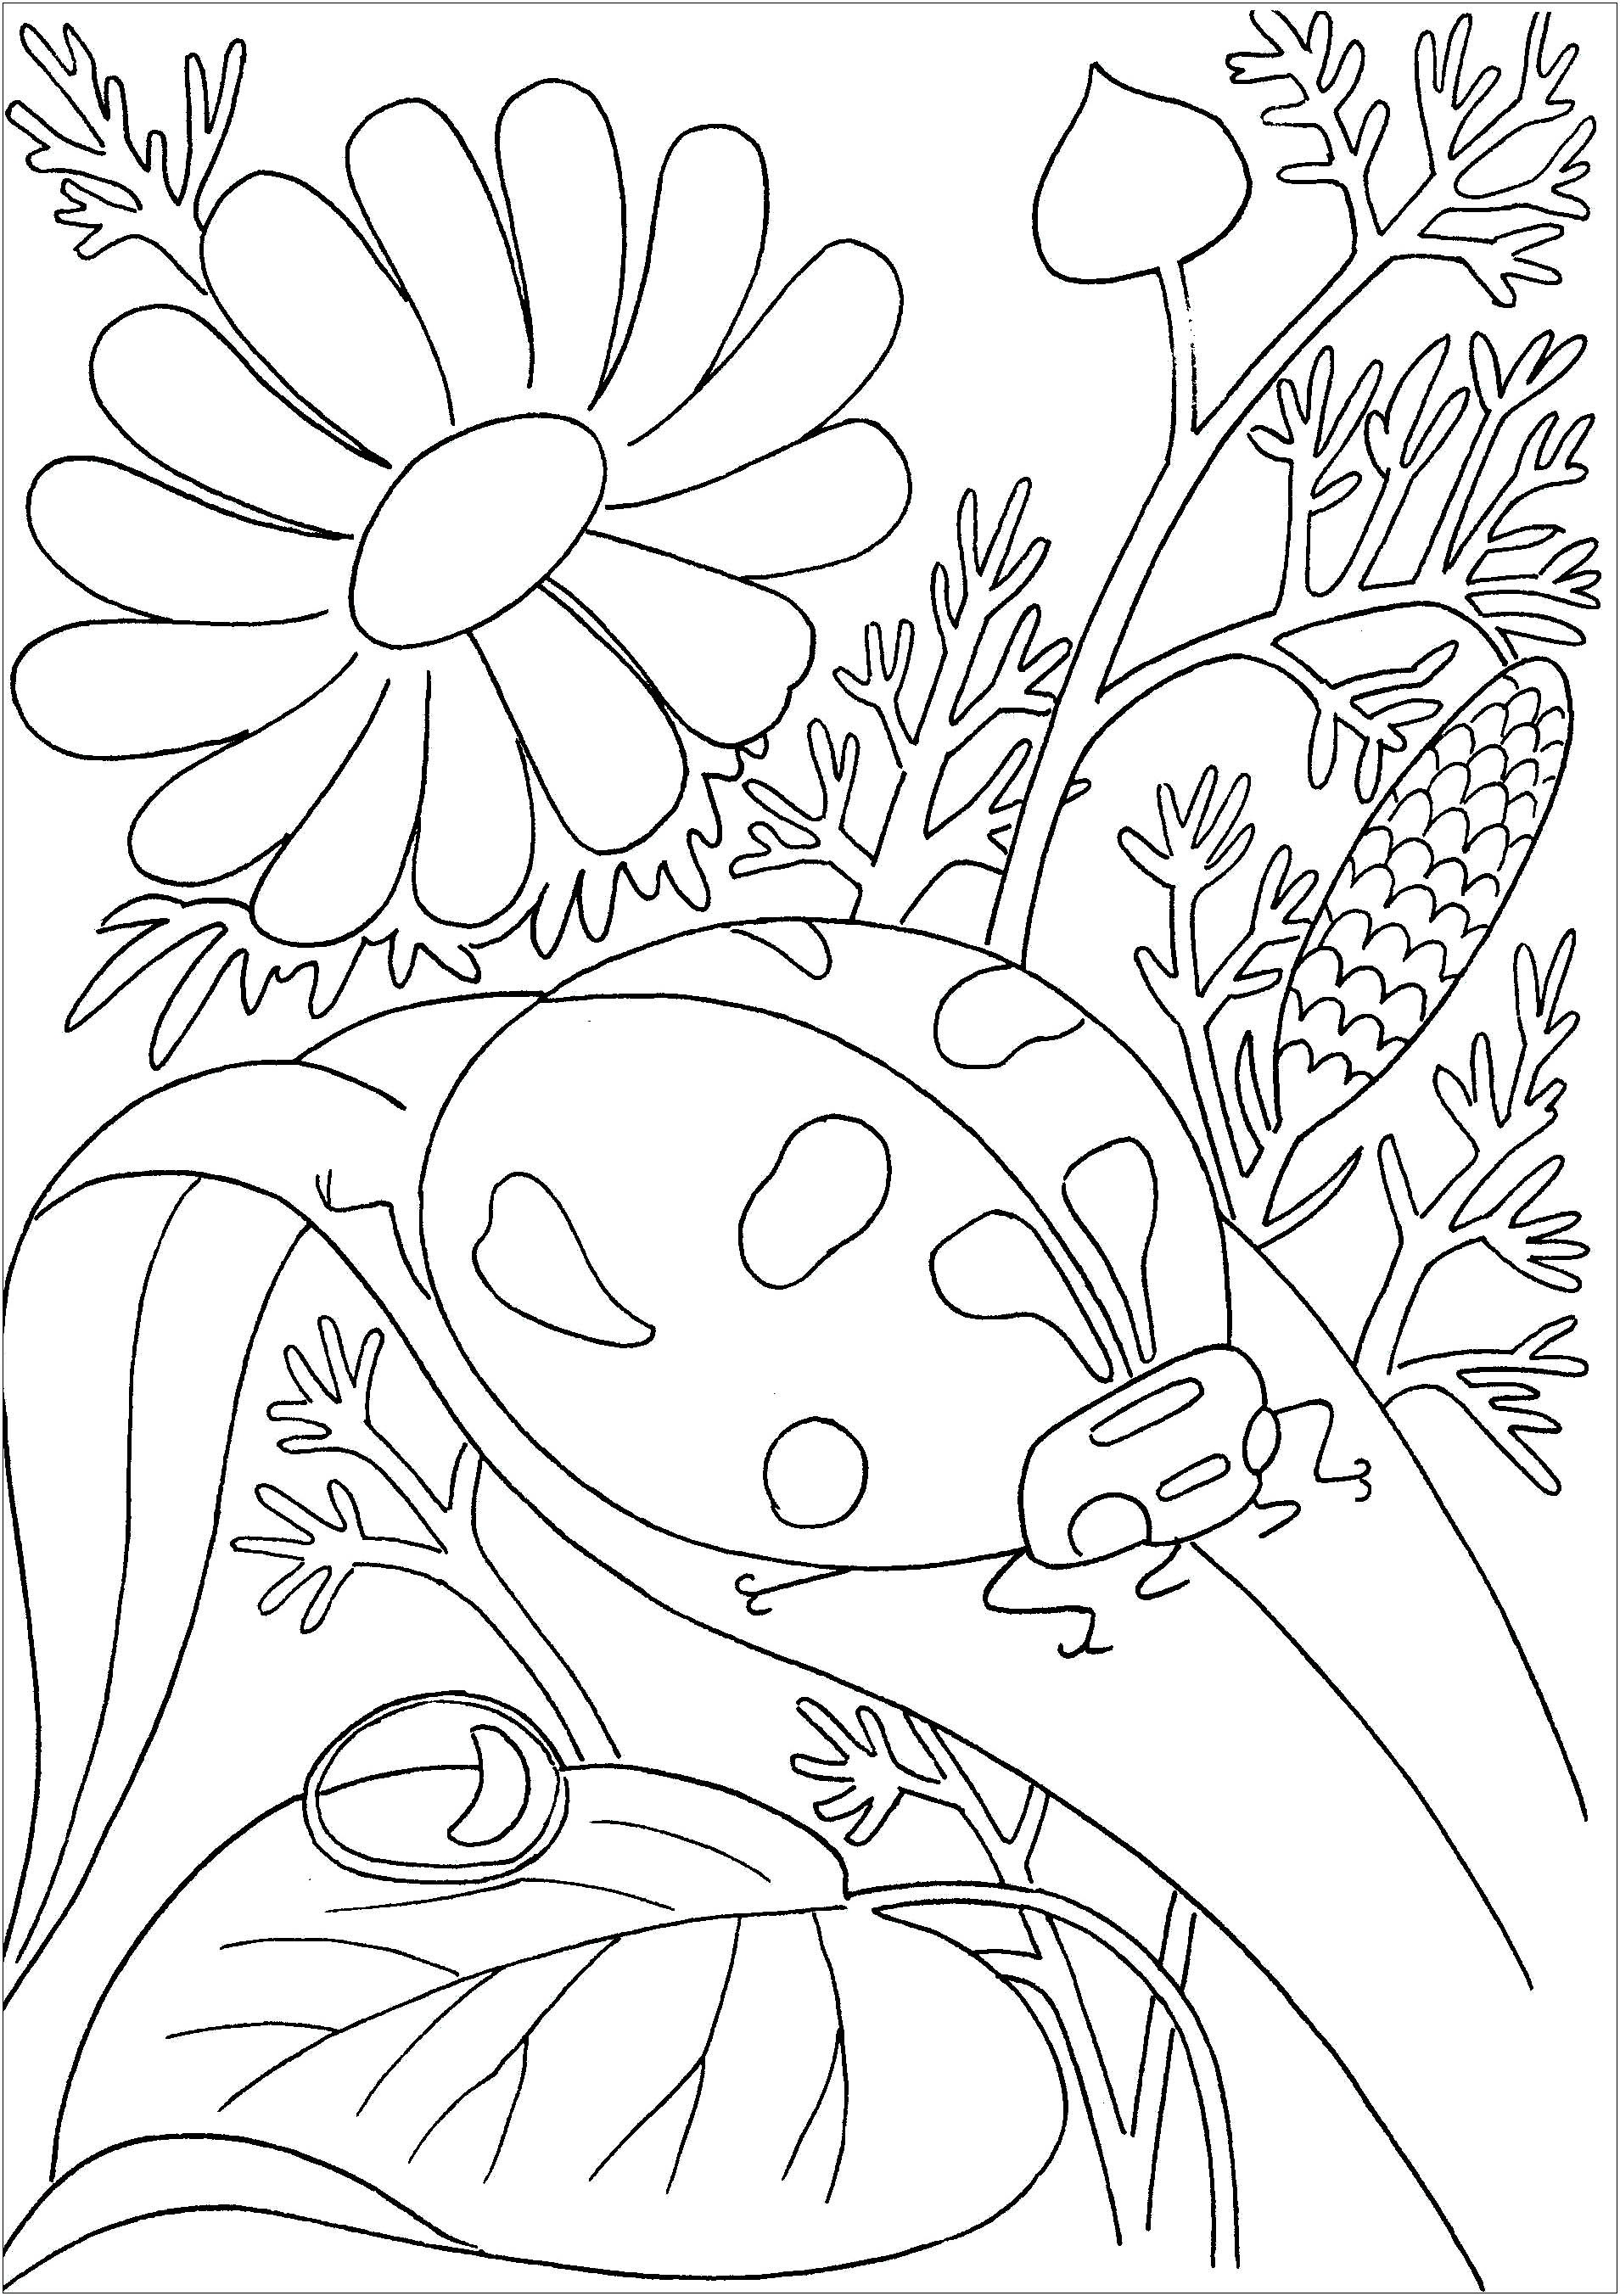 Insects To Color For Kids